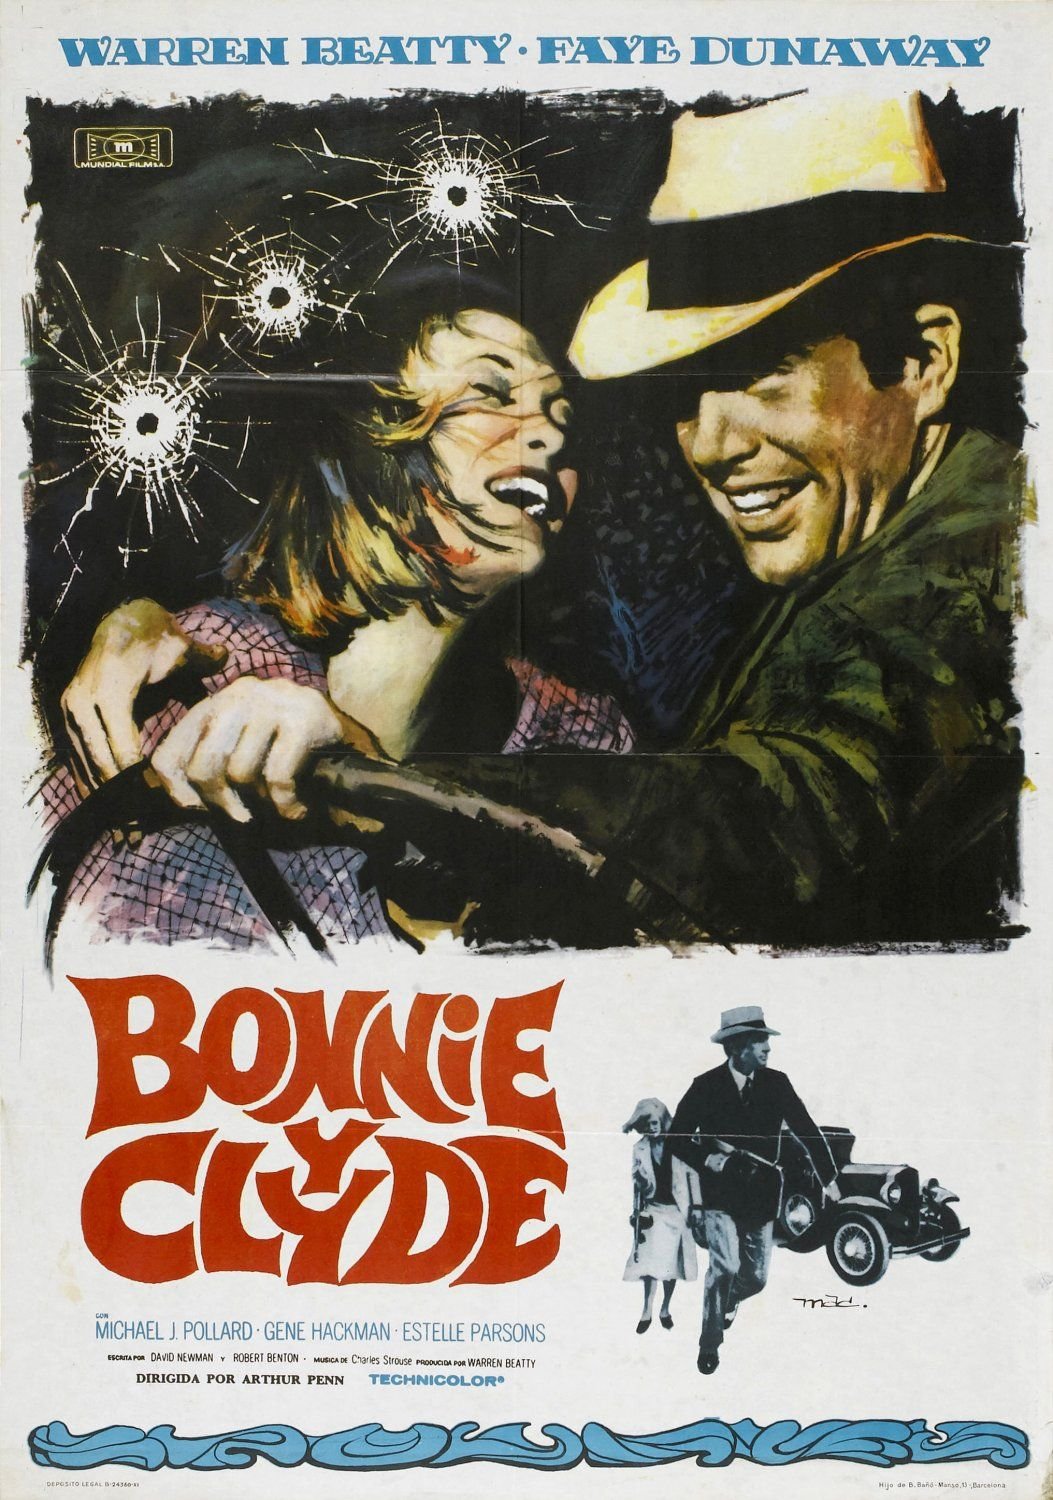 bonnie and clyde was a 1967 film about famous criminal couple bonnie and clyde was a 1967 film about famous criminal couple clyde barrow and bonnie parker